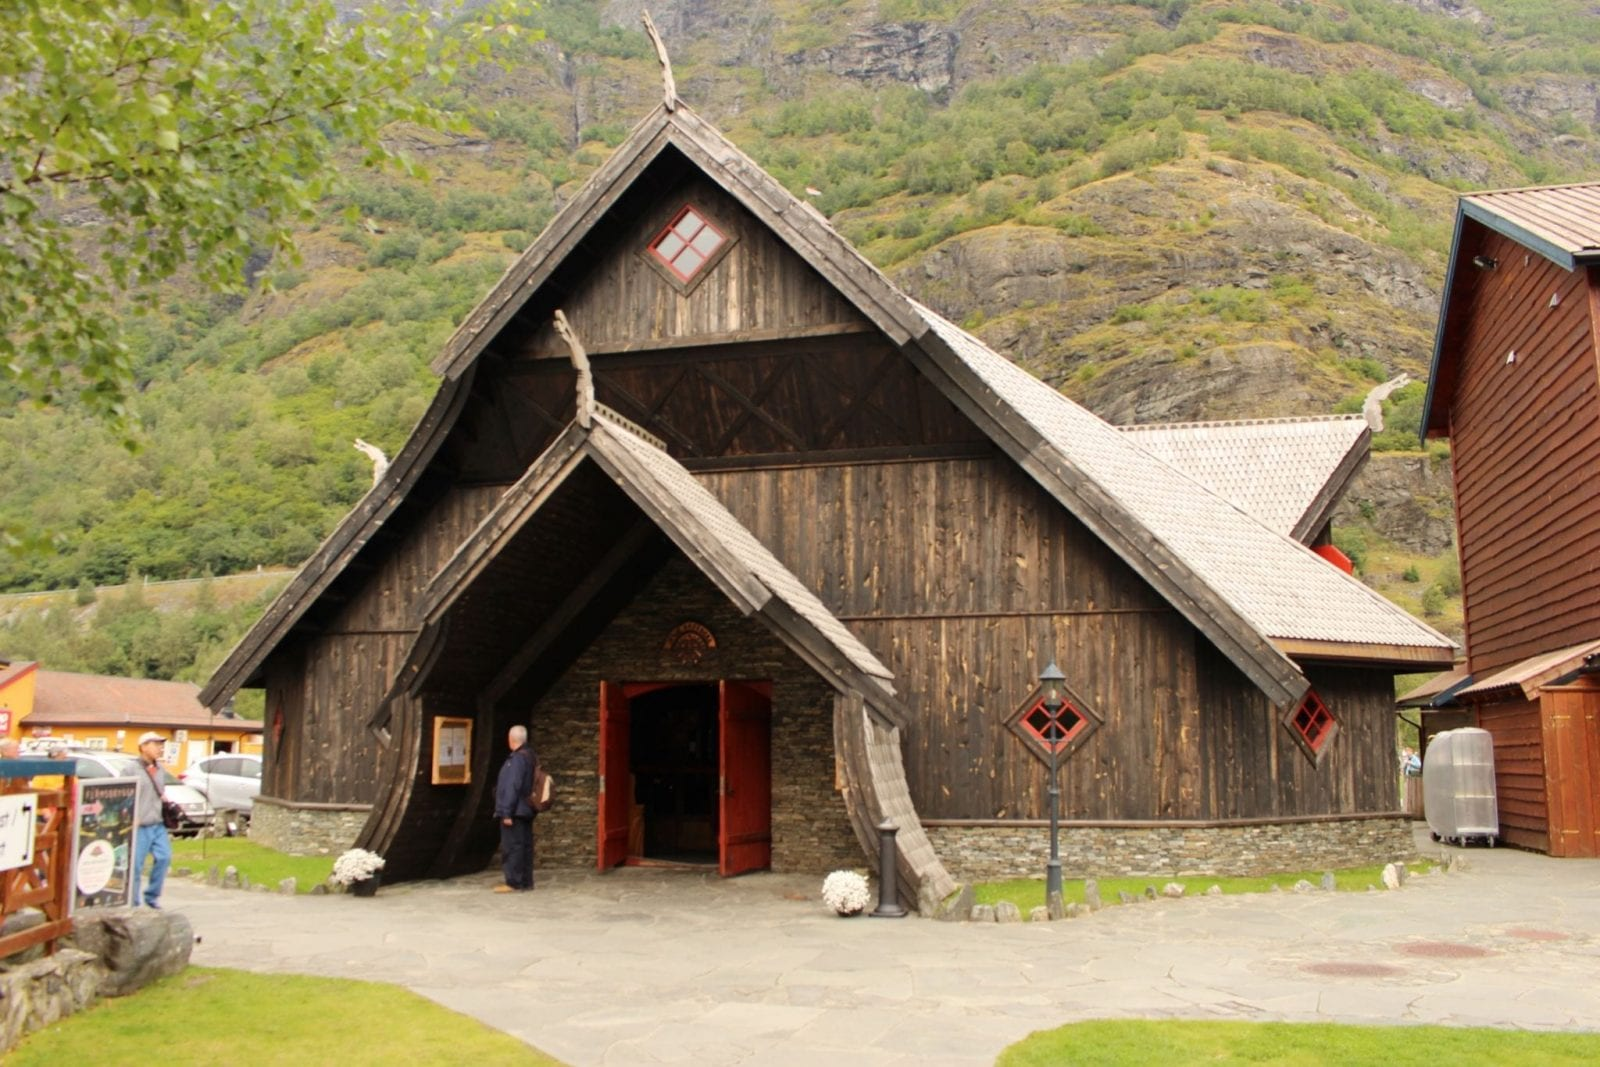 This is the architecture of the Egir Brew Pub in Flam, Norway.